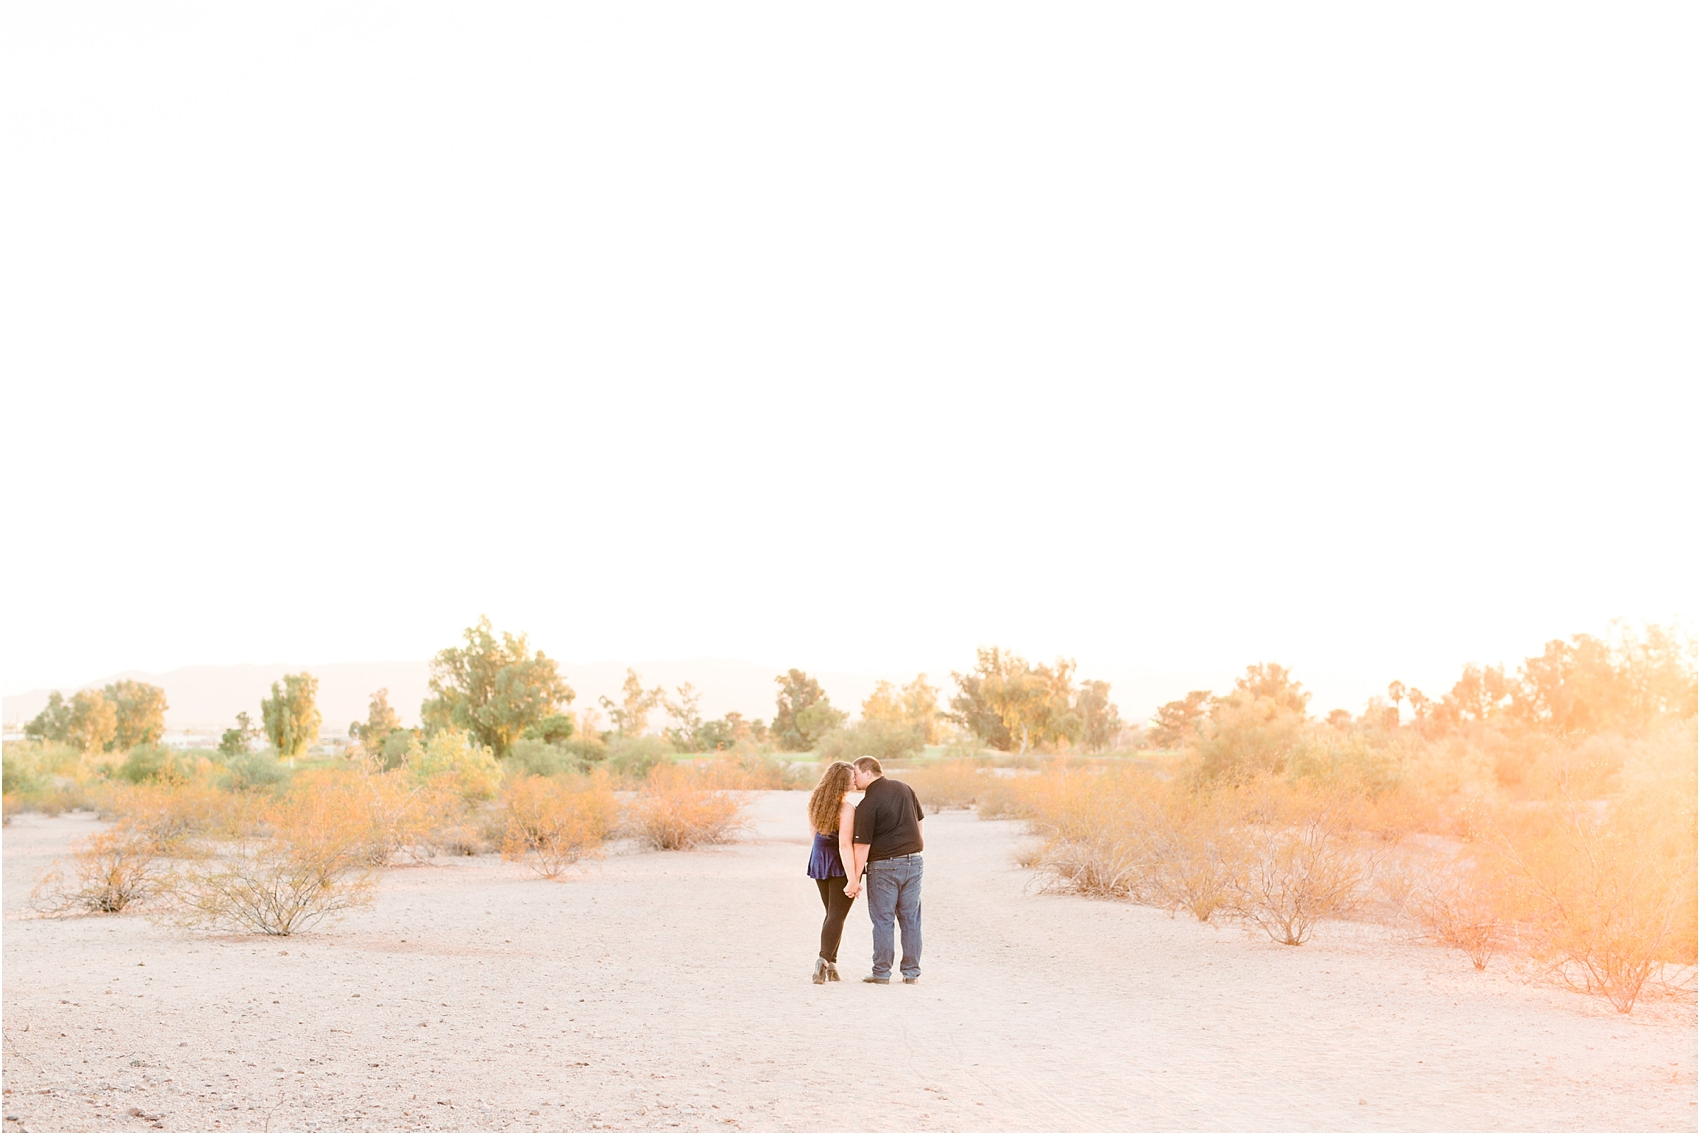 romantic-desert-engagement-photos-in-scottsdale-arizona-courtney-carolyn-photography-by-katelyn-james_0042.jpg